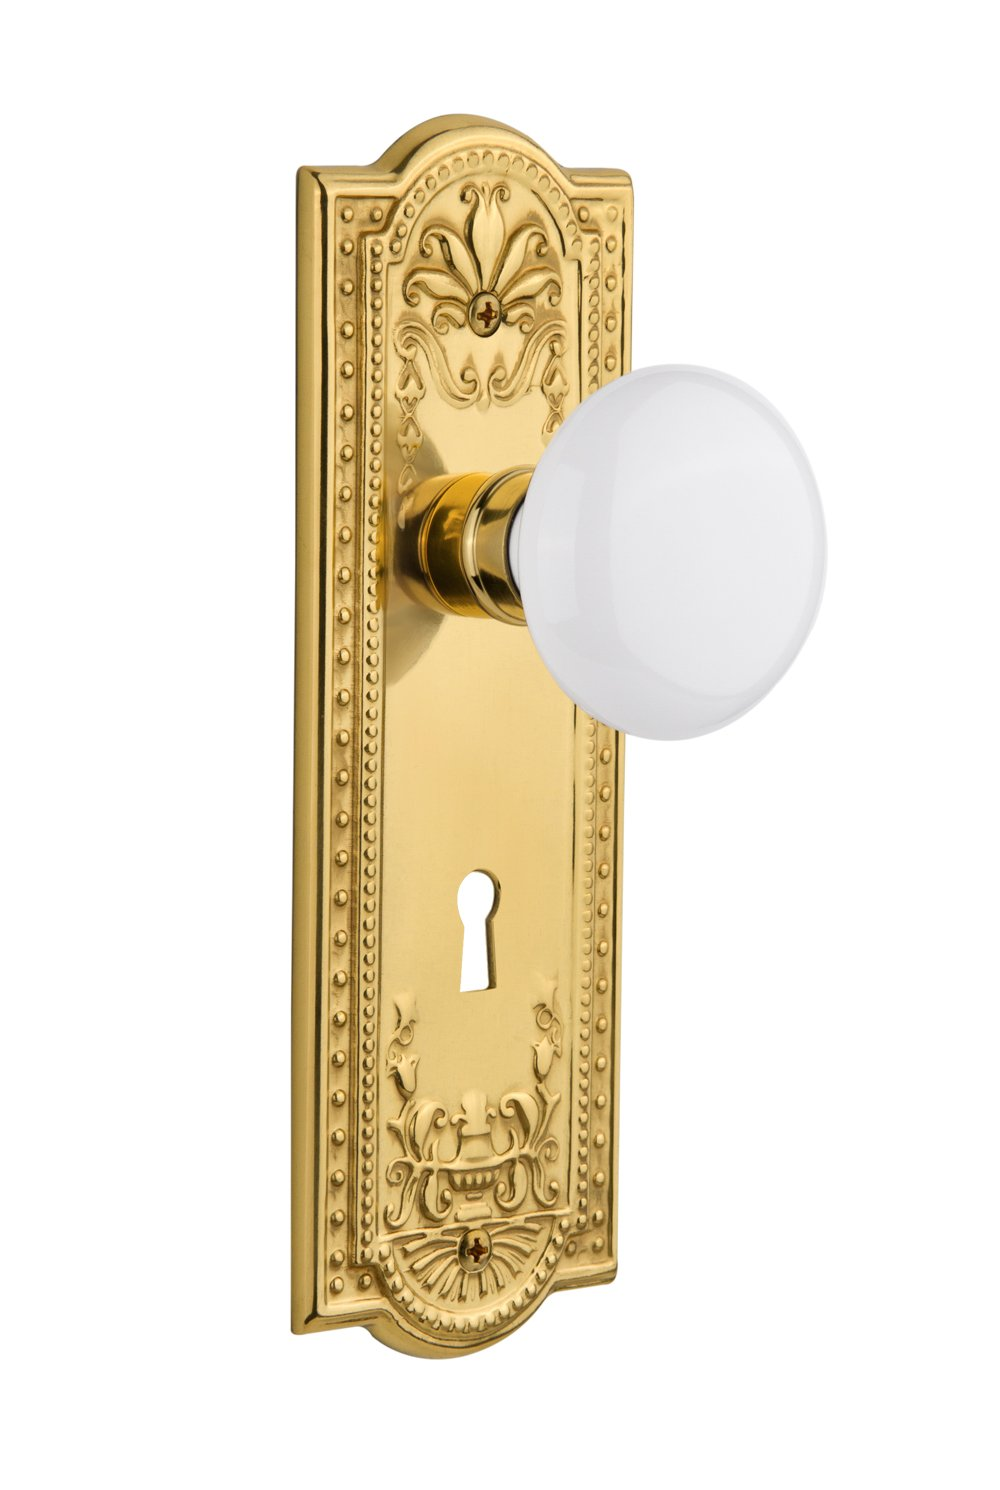 Oil-Rubbed Bronze Nostalgic Warehouse Meadows Plate with Keyhole White Porcelain Knob 2.375 Privacy